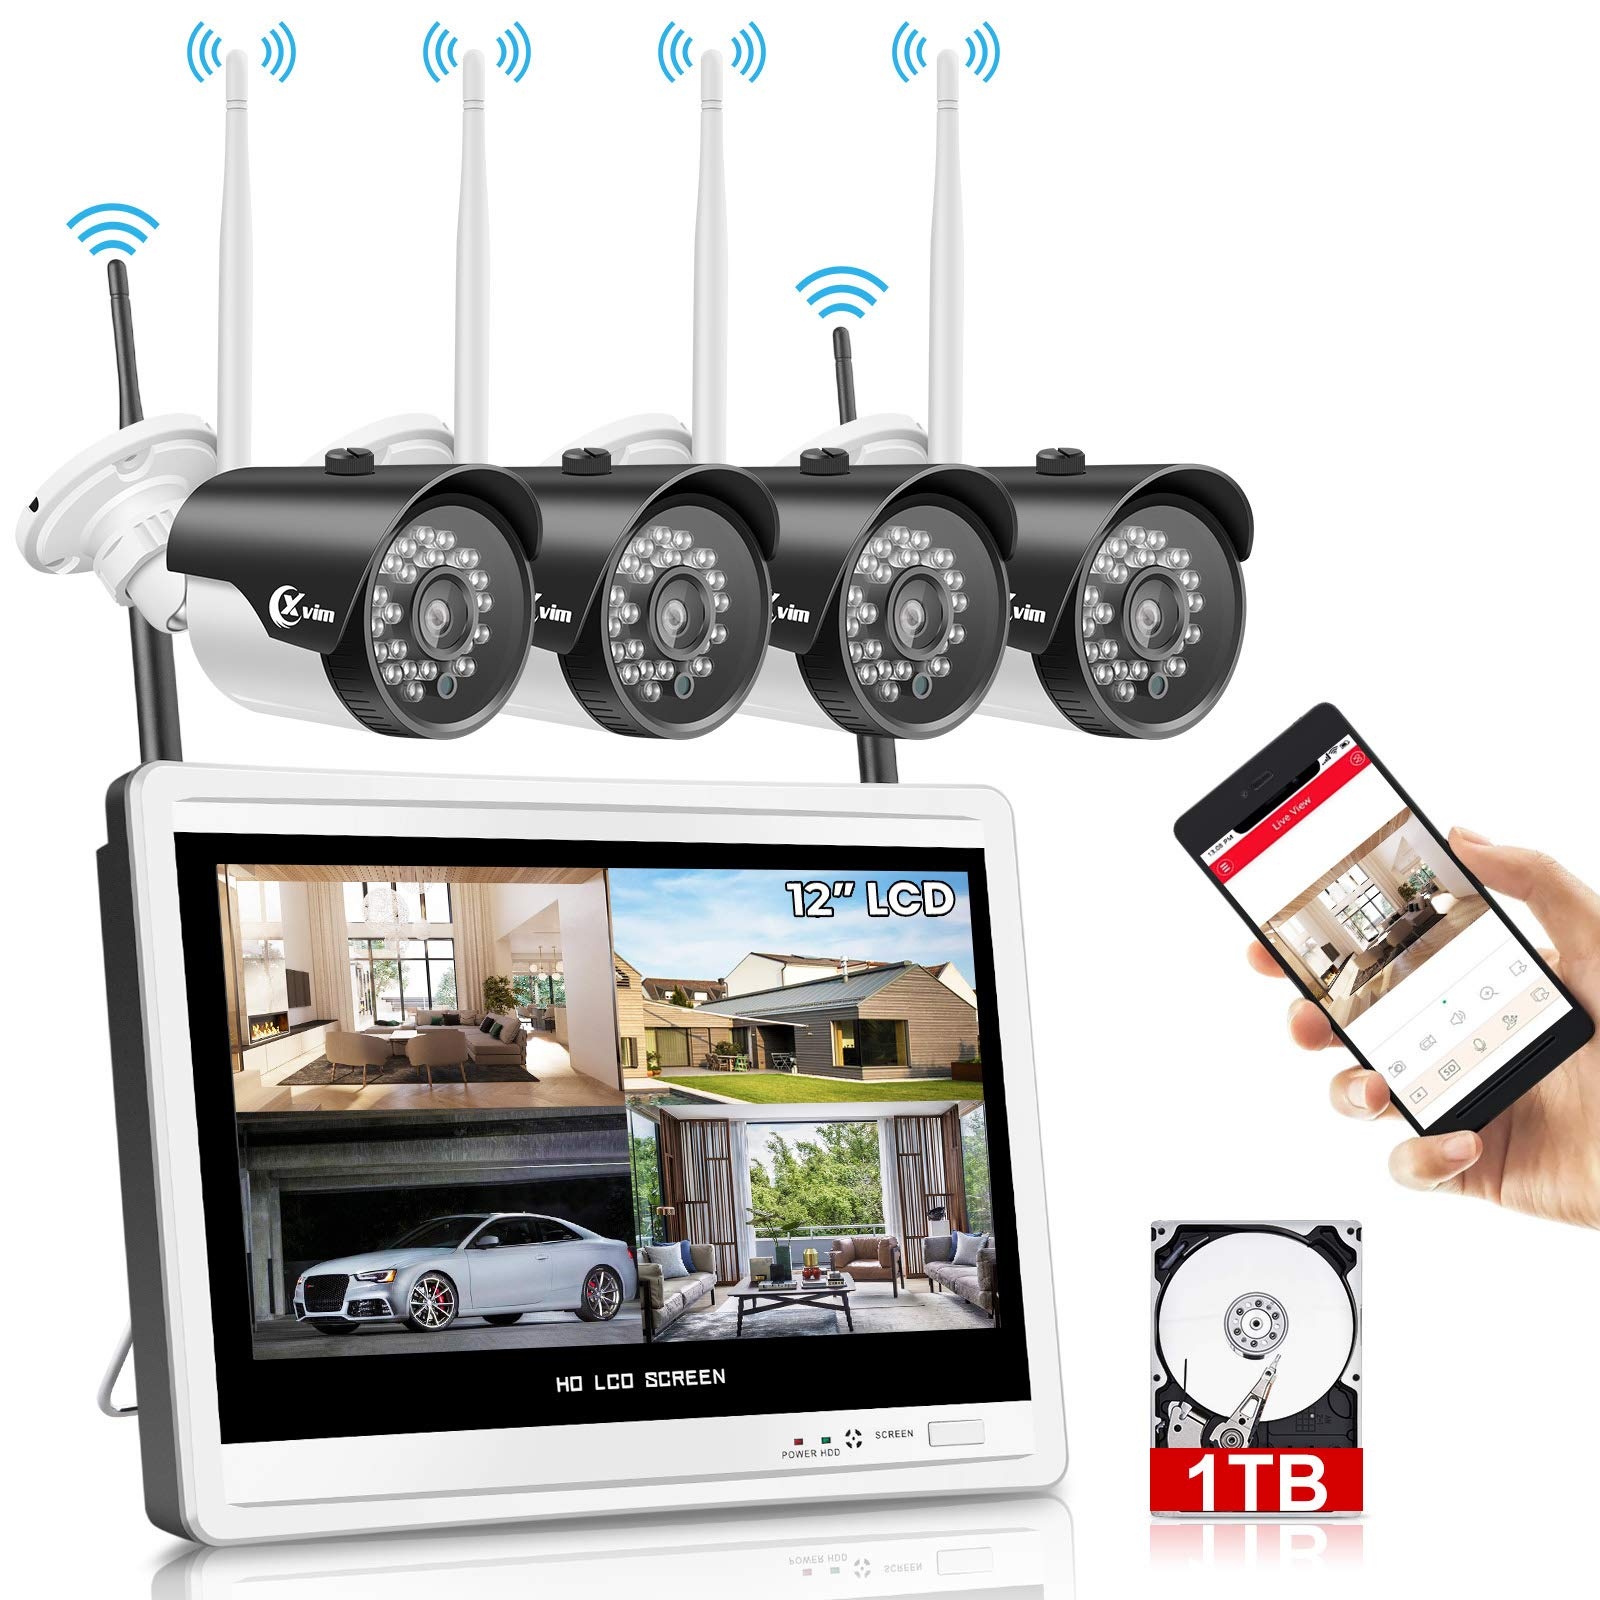 """XVIM 12"""" Monitor Wireless Security Camera System with 1TB Hard Drive for Home, 4pcs 2.0MP Outdoor Waterproof IP Cameras, 4 Channel HD 1080P WiFi Video Surveillance Cameras DVR Kits,Easy Remote View"""